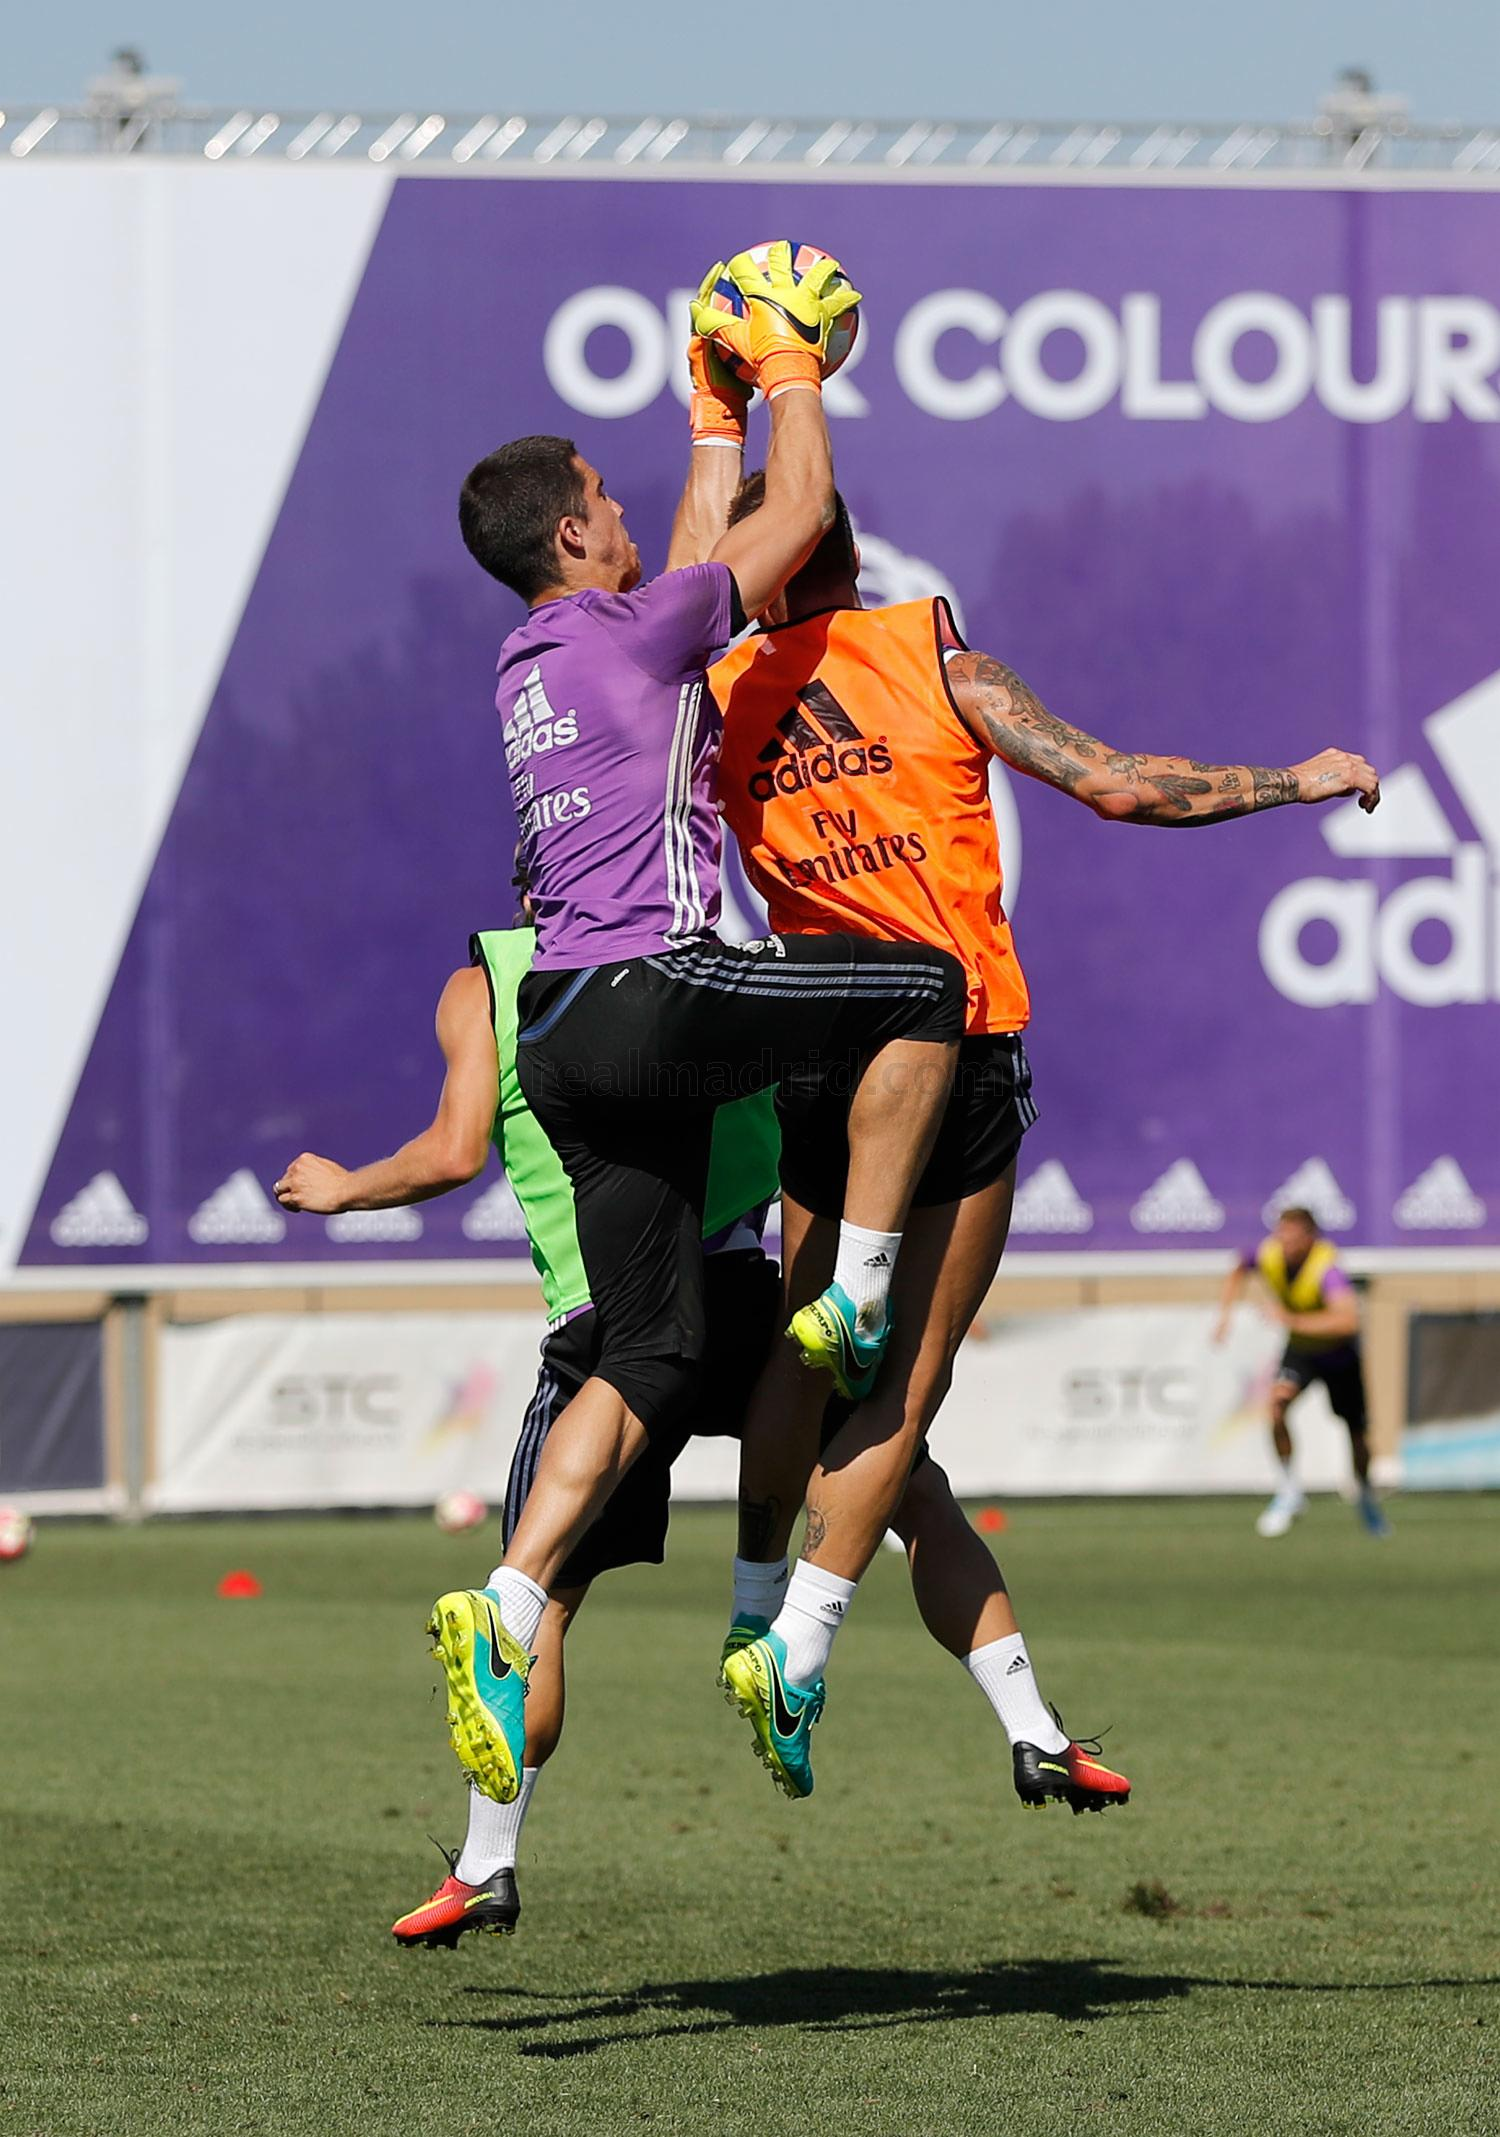 Real Madrid - Entrenamiento del Real Madrid - 24-08-2016